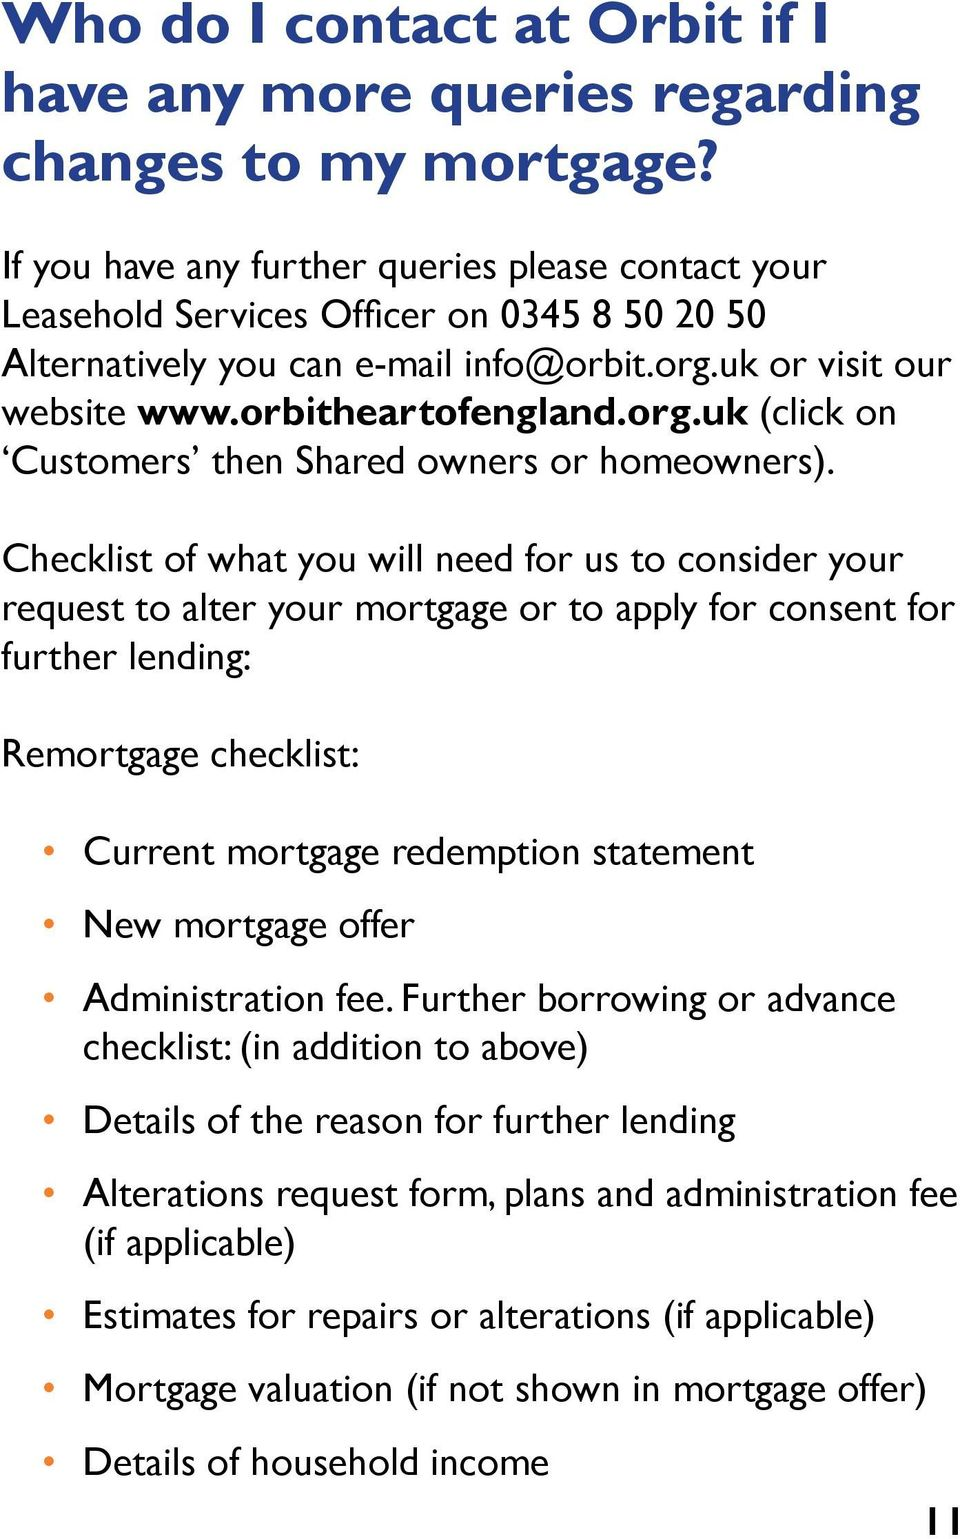 Checklist of what you will need for us to consider your request to alter your mortgage or to apply for consent for further lending: Remortgage checklist: Current mortgage redemption statement New